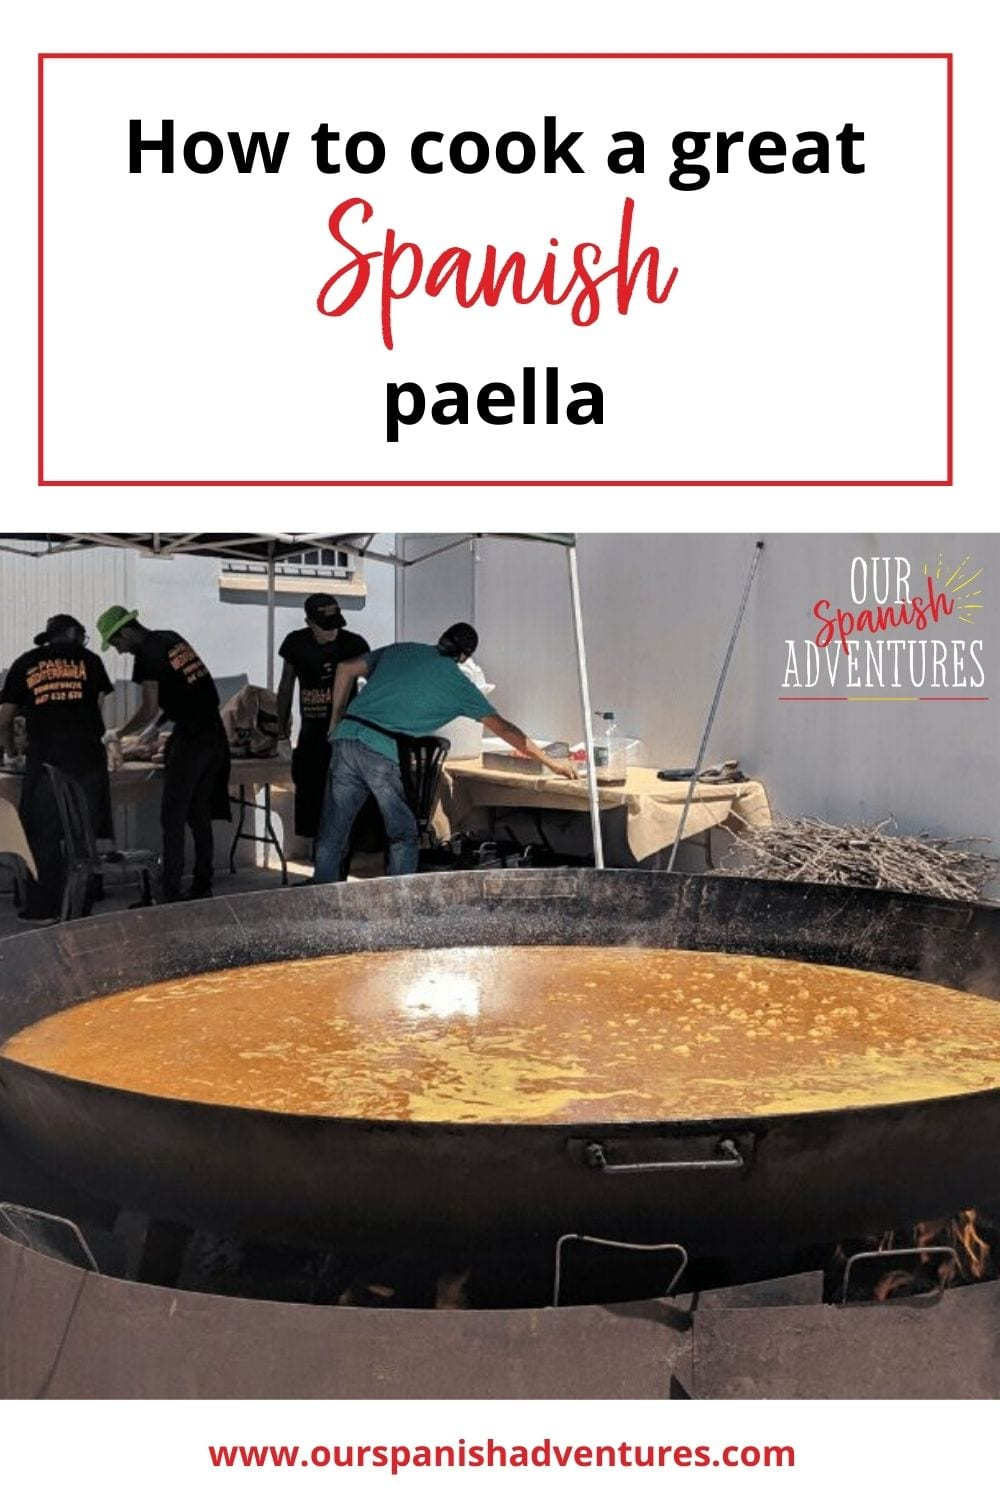 How to cook a great Spanish paella | Our Spanish Adventures